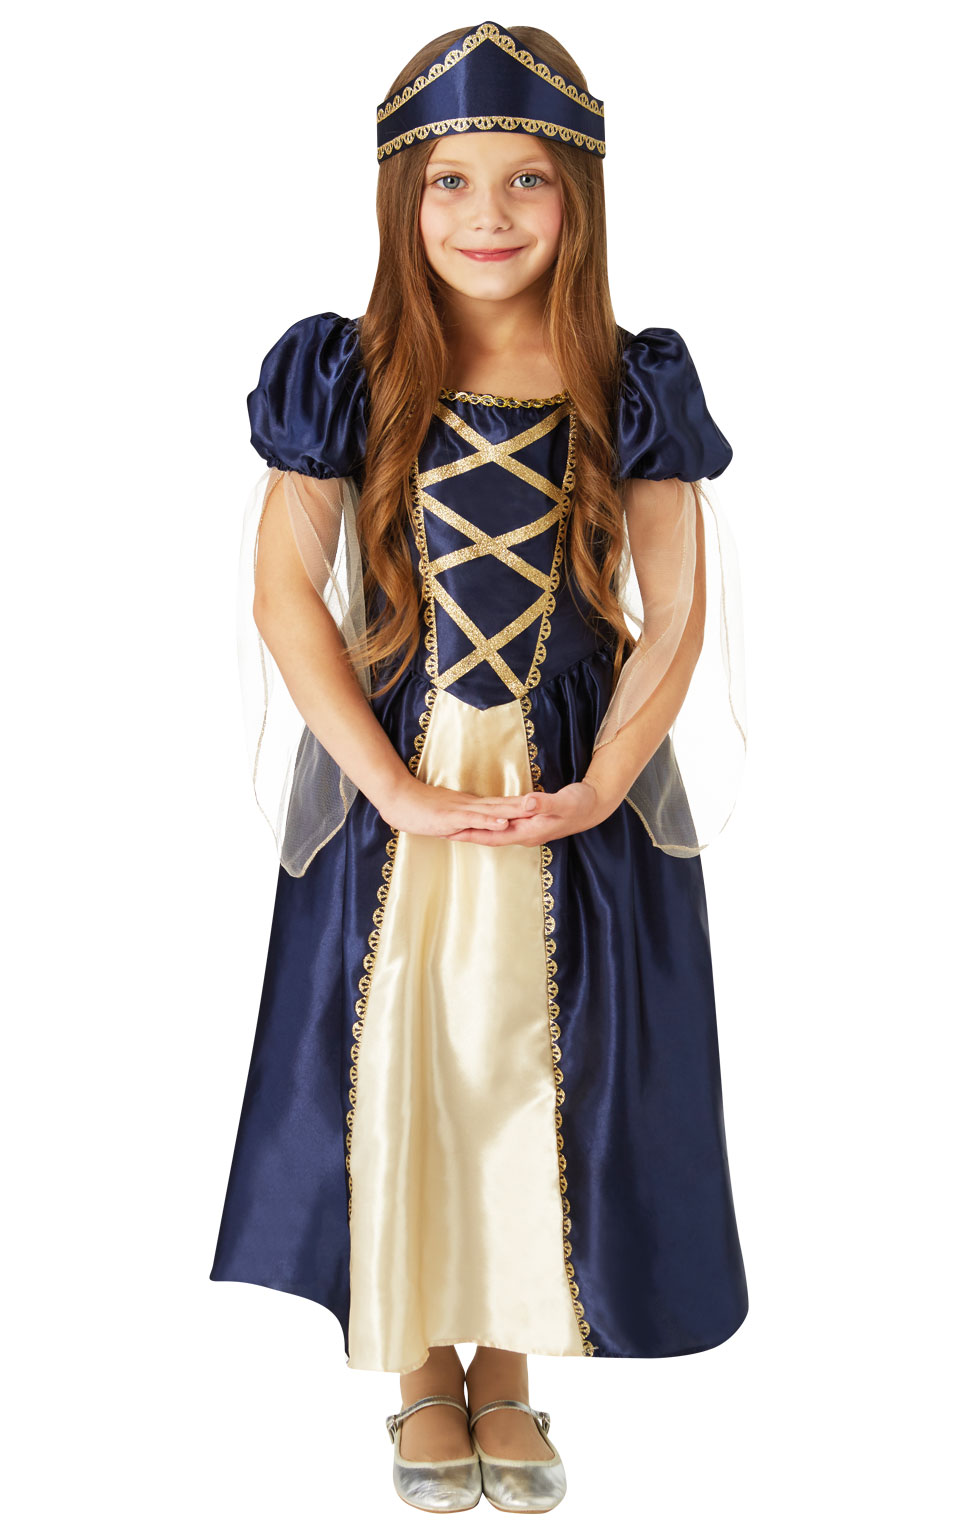 childrens renaissance costumes child medieval costumes  sc 1 st  Little Star Parties & Girl Renaissance Princess Costume Fancy Dress Costumes u0026 Party ...